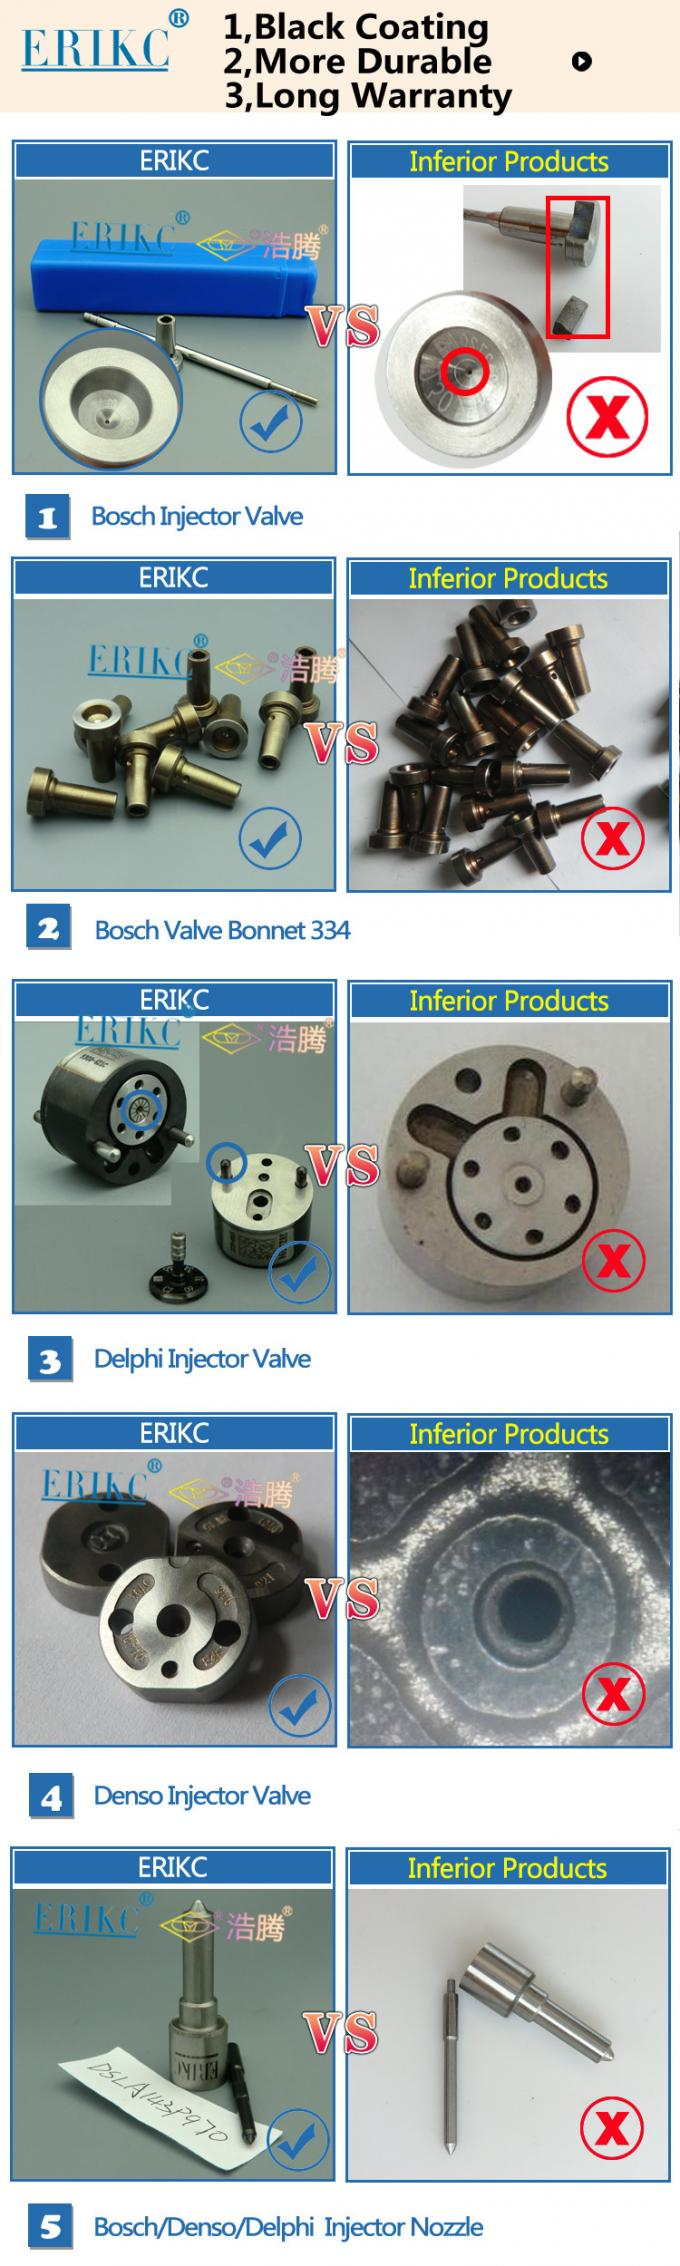 denso auto fuel pump injector 095000-6380 ( 9709500638 ), 0950006380 ( 970950-0638 )  FORWARD Fuel Injector 095000-638#